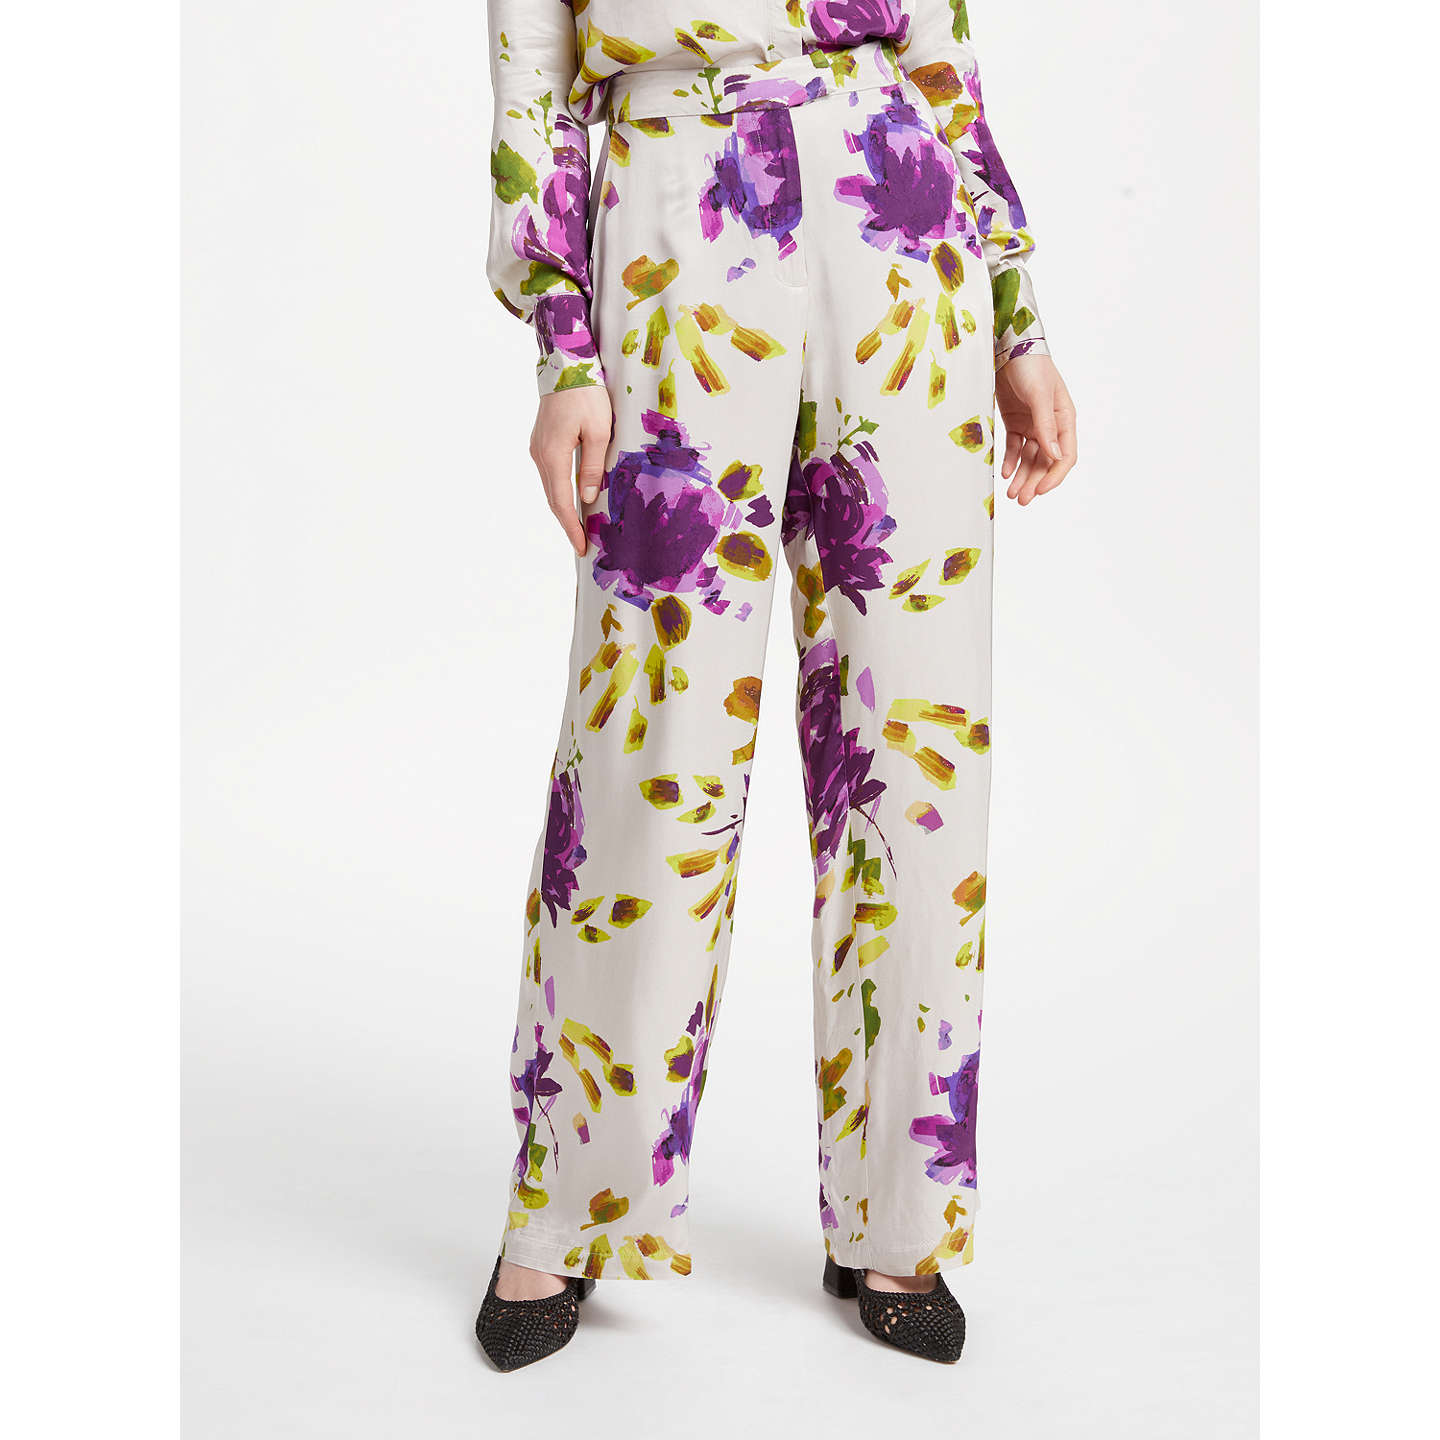 Release Dates Authentic Abelia Artist Flower Wide Leg Trousers Finery Cheap Price Factory Outlet nsMlQ3F